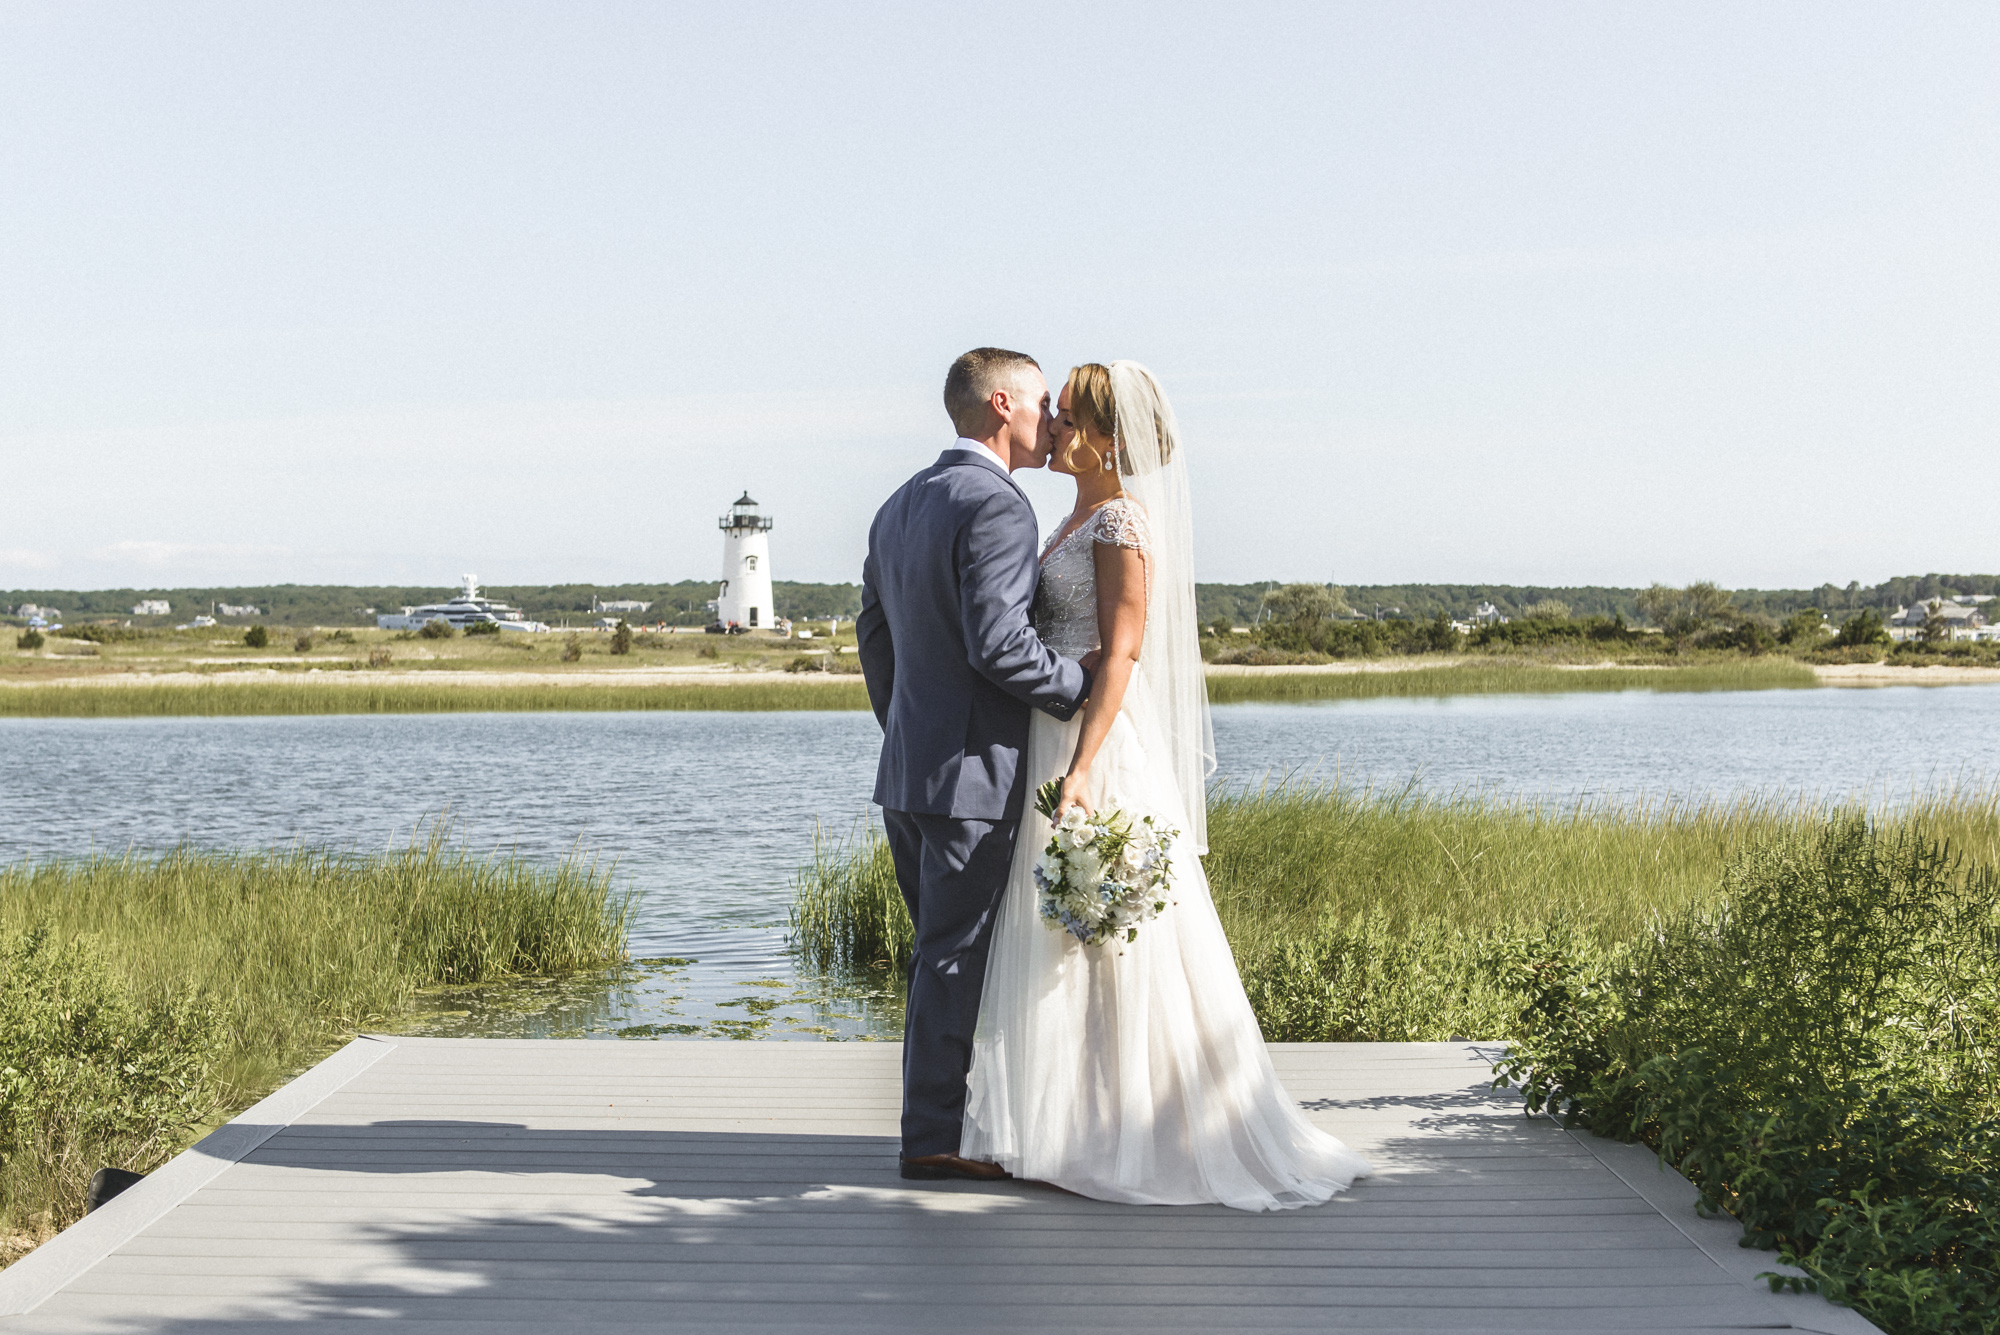 A bride and groom kiss after their first look by the Edgartown Lighthouse photo by David Welch Photography